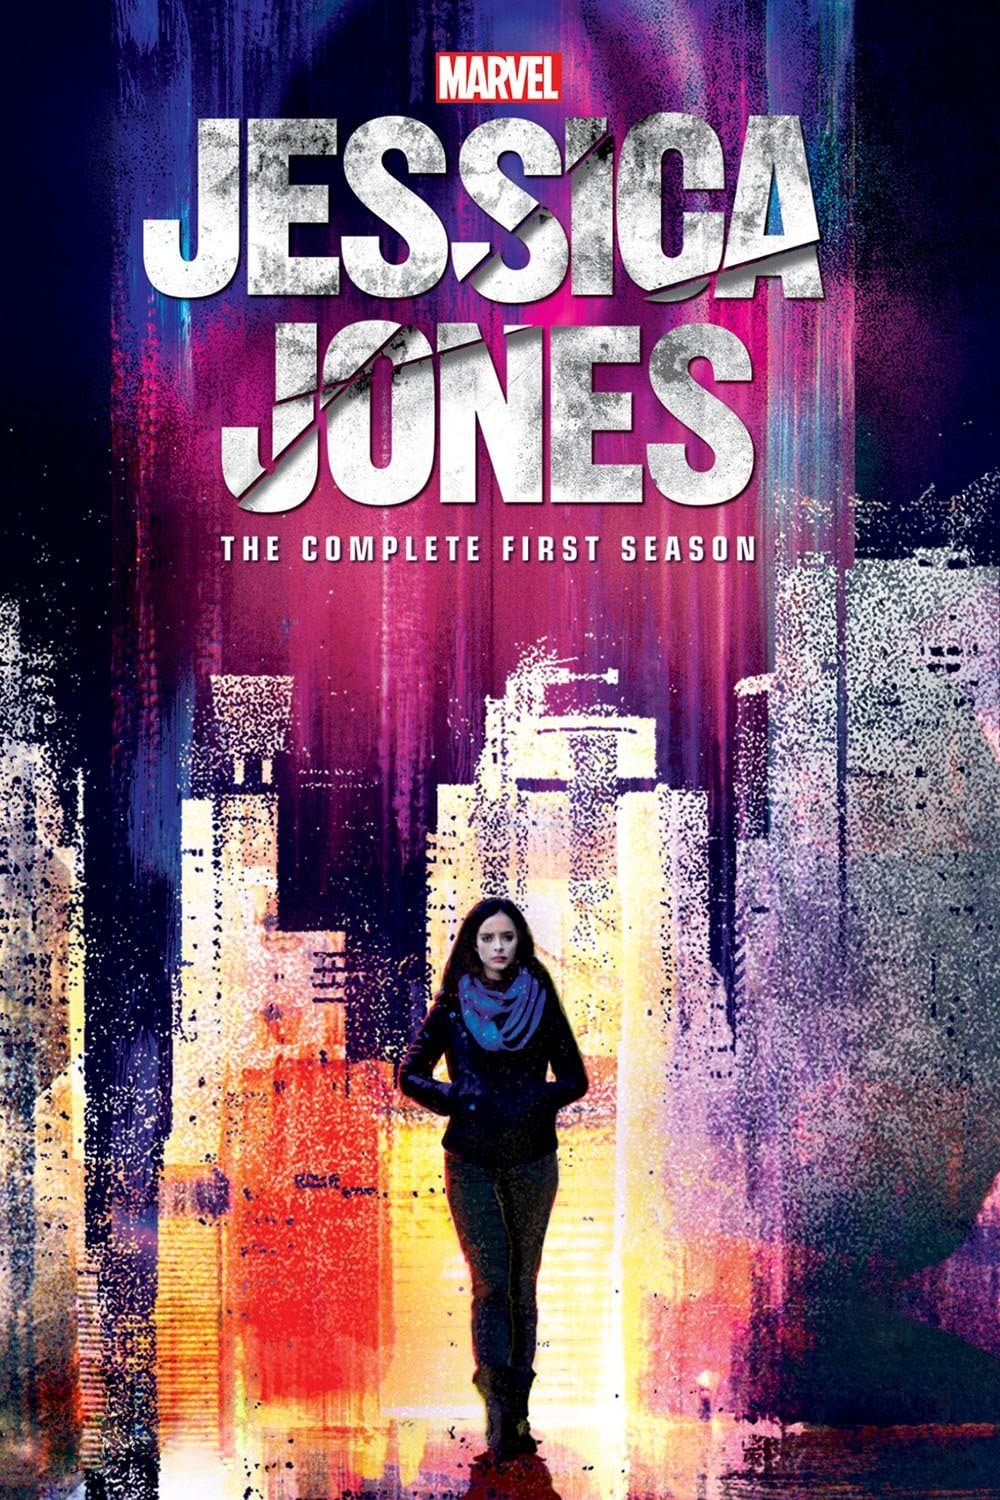 Marvel's Jessica Jones Season 1